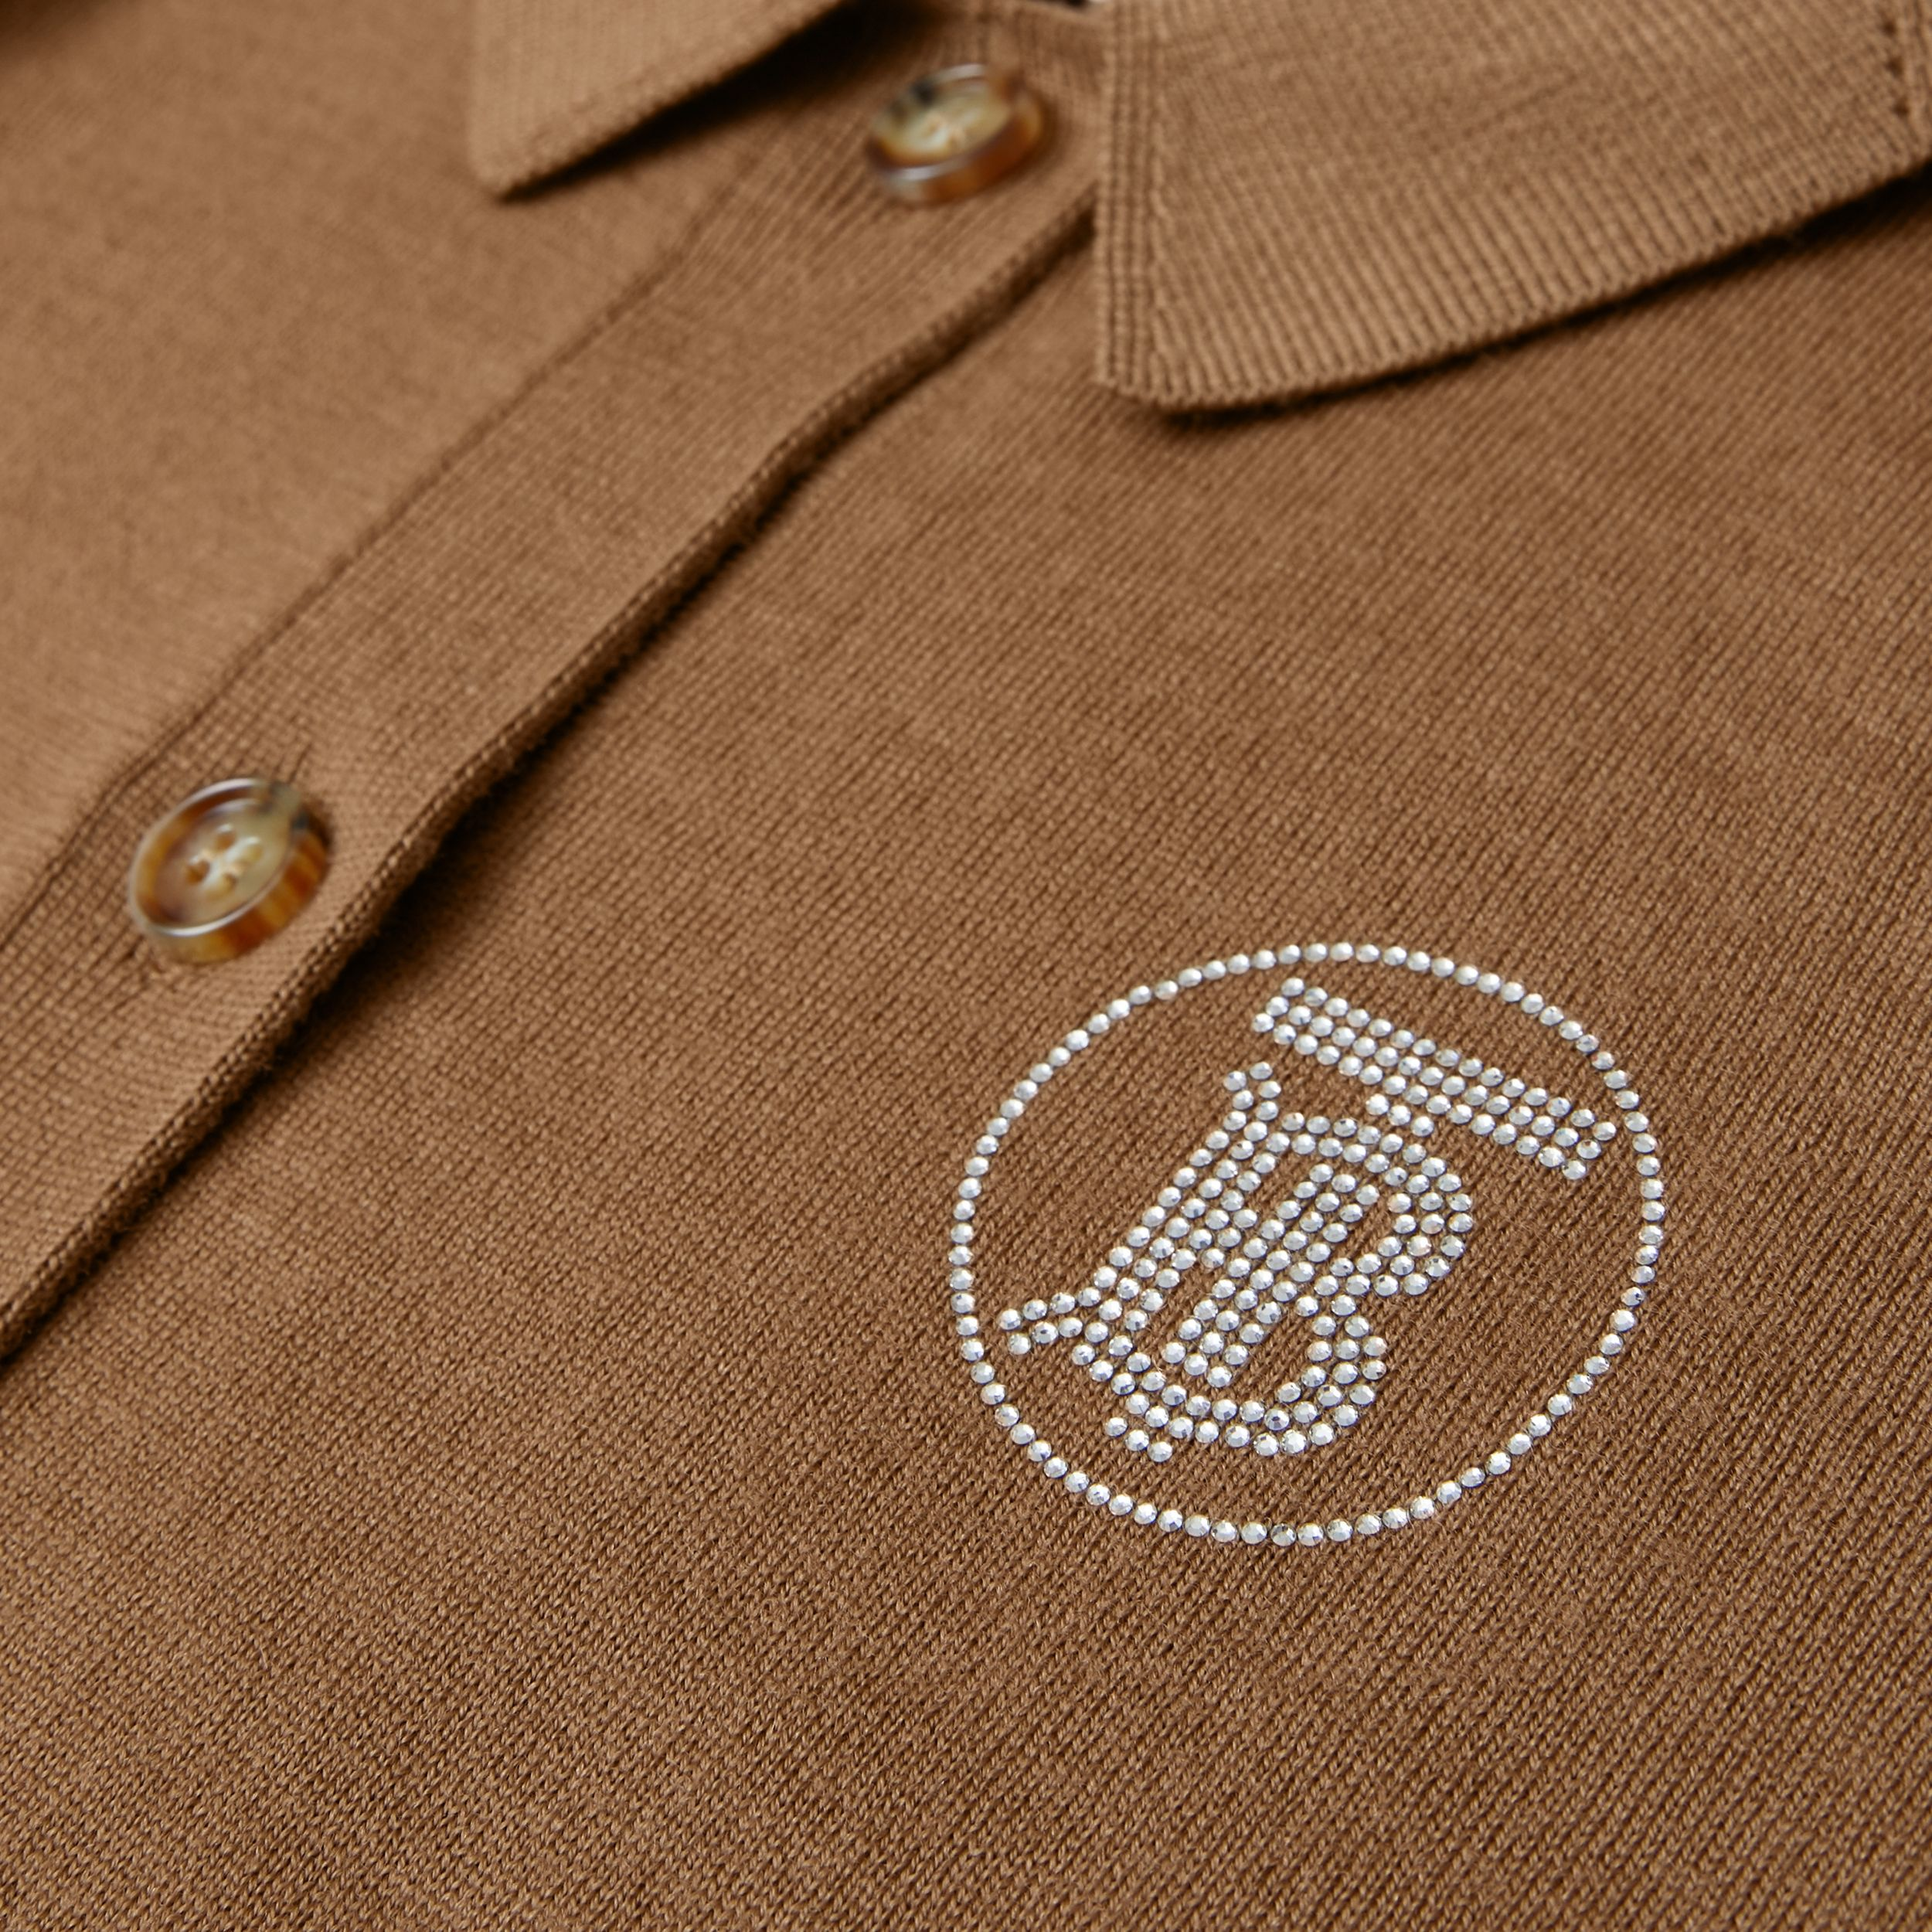 Crystal Monogram Motif Merino Wool Cardigan in Oak Brown | Burberry Hong Kong S.A.R. - 2